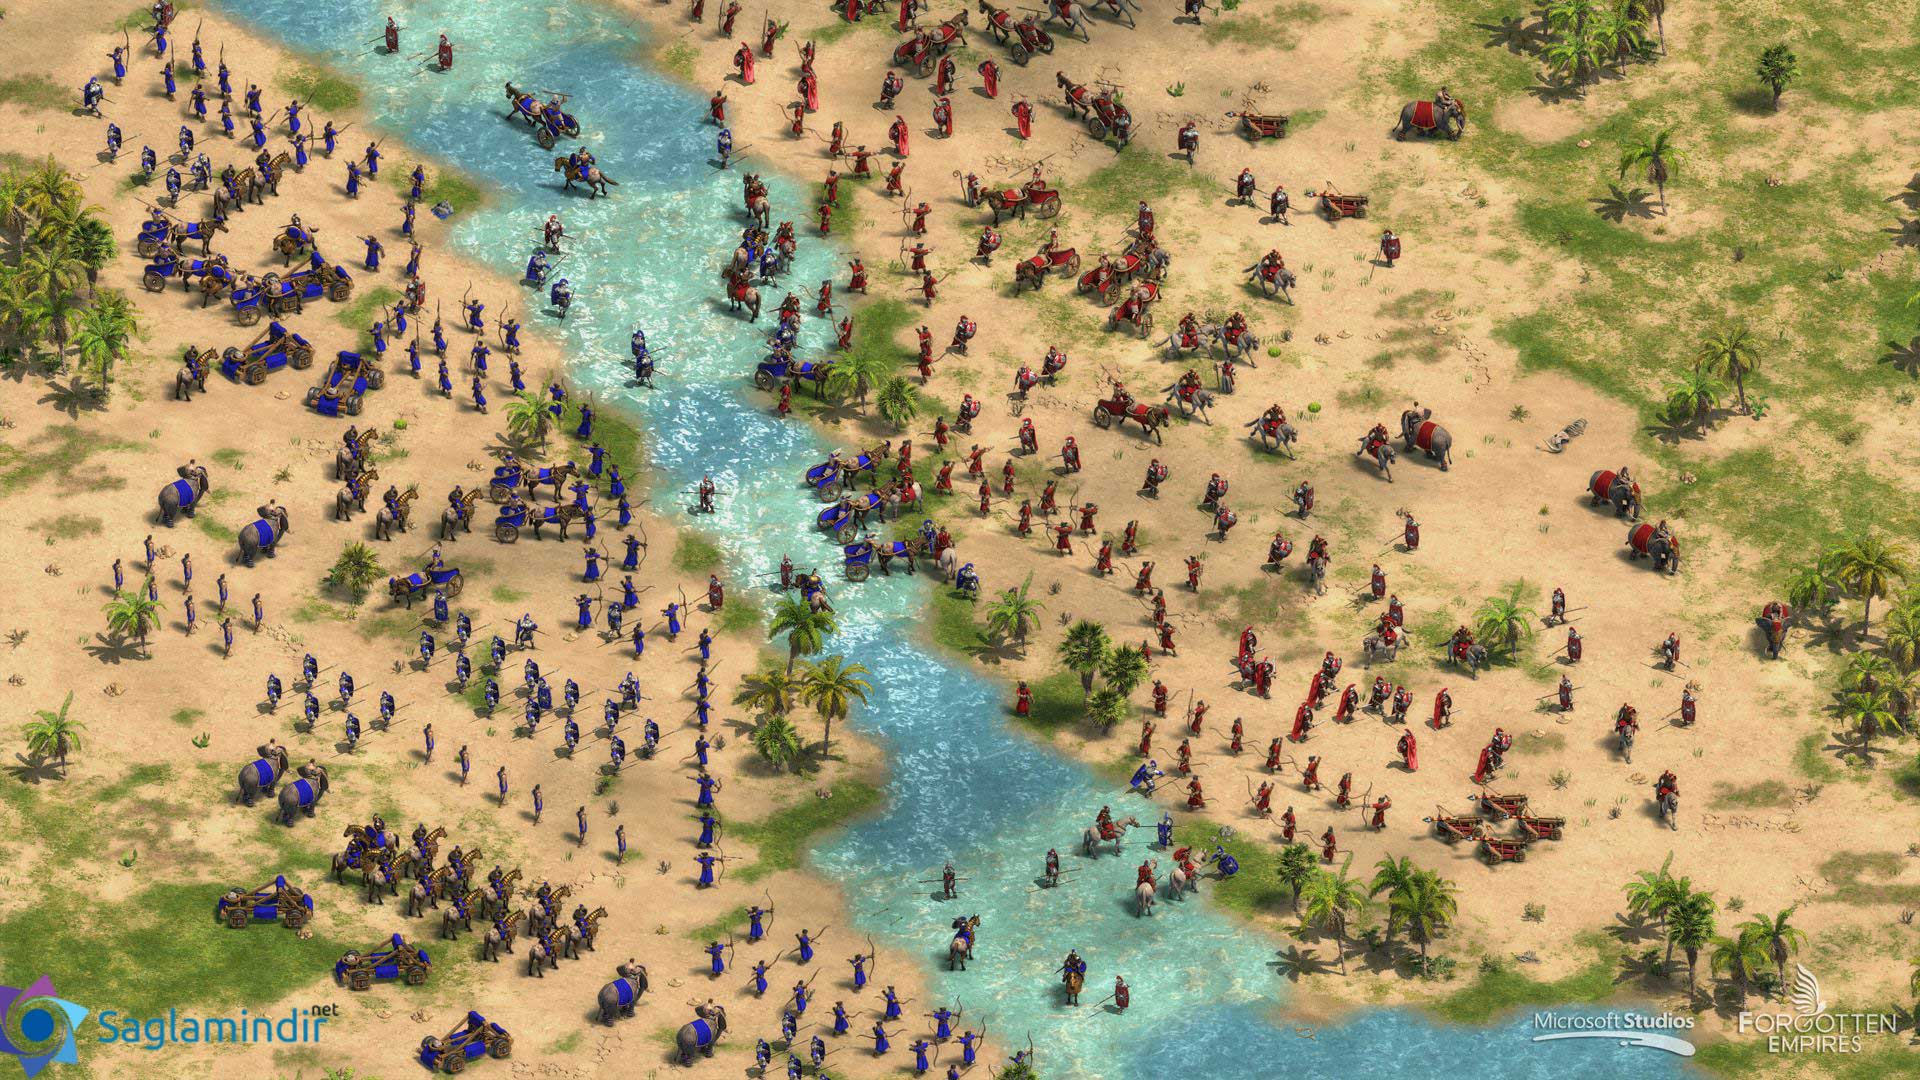 Age of Empires 2 Definitive Edition saglamindir